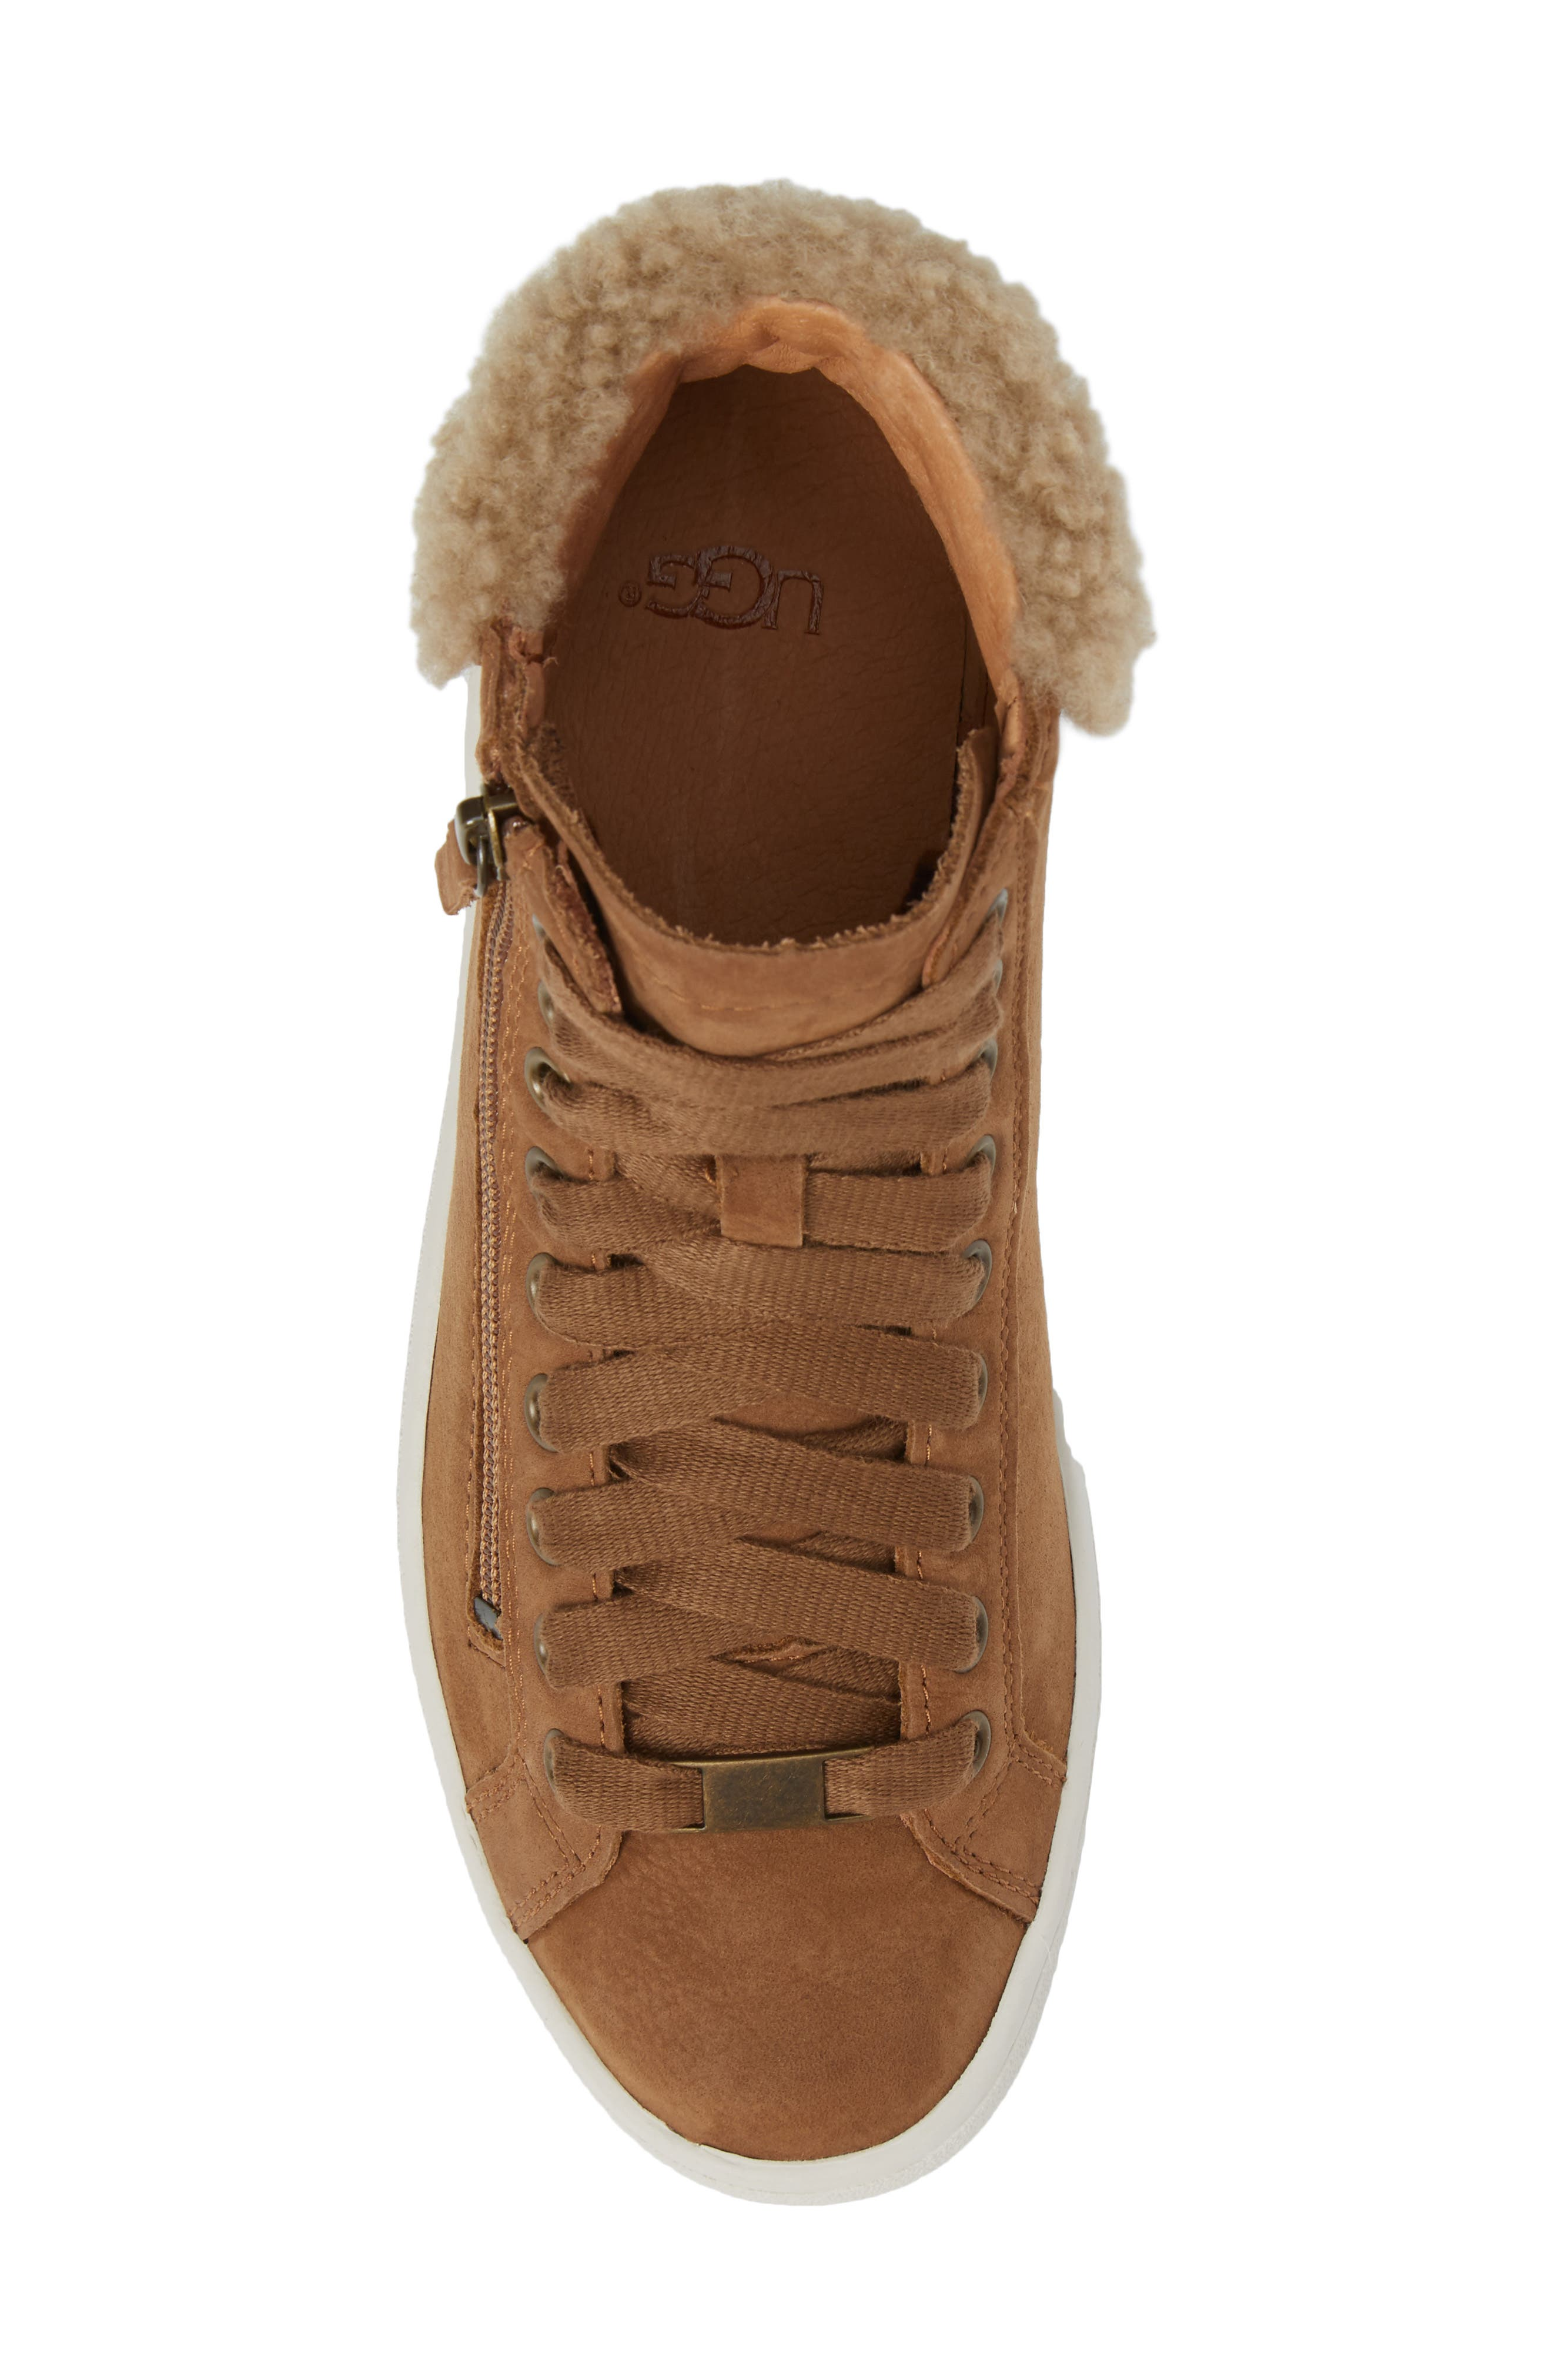 Olive Genuine Shearling Cuff Sneaker,                             Alternate thumbnail 5, color,                             219